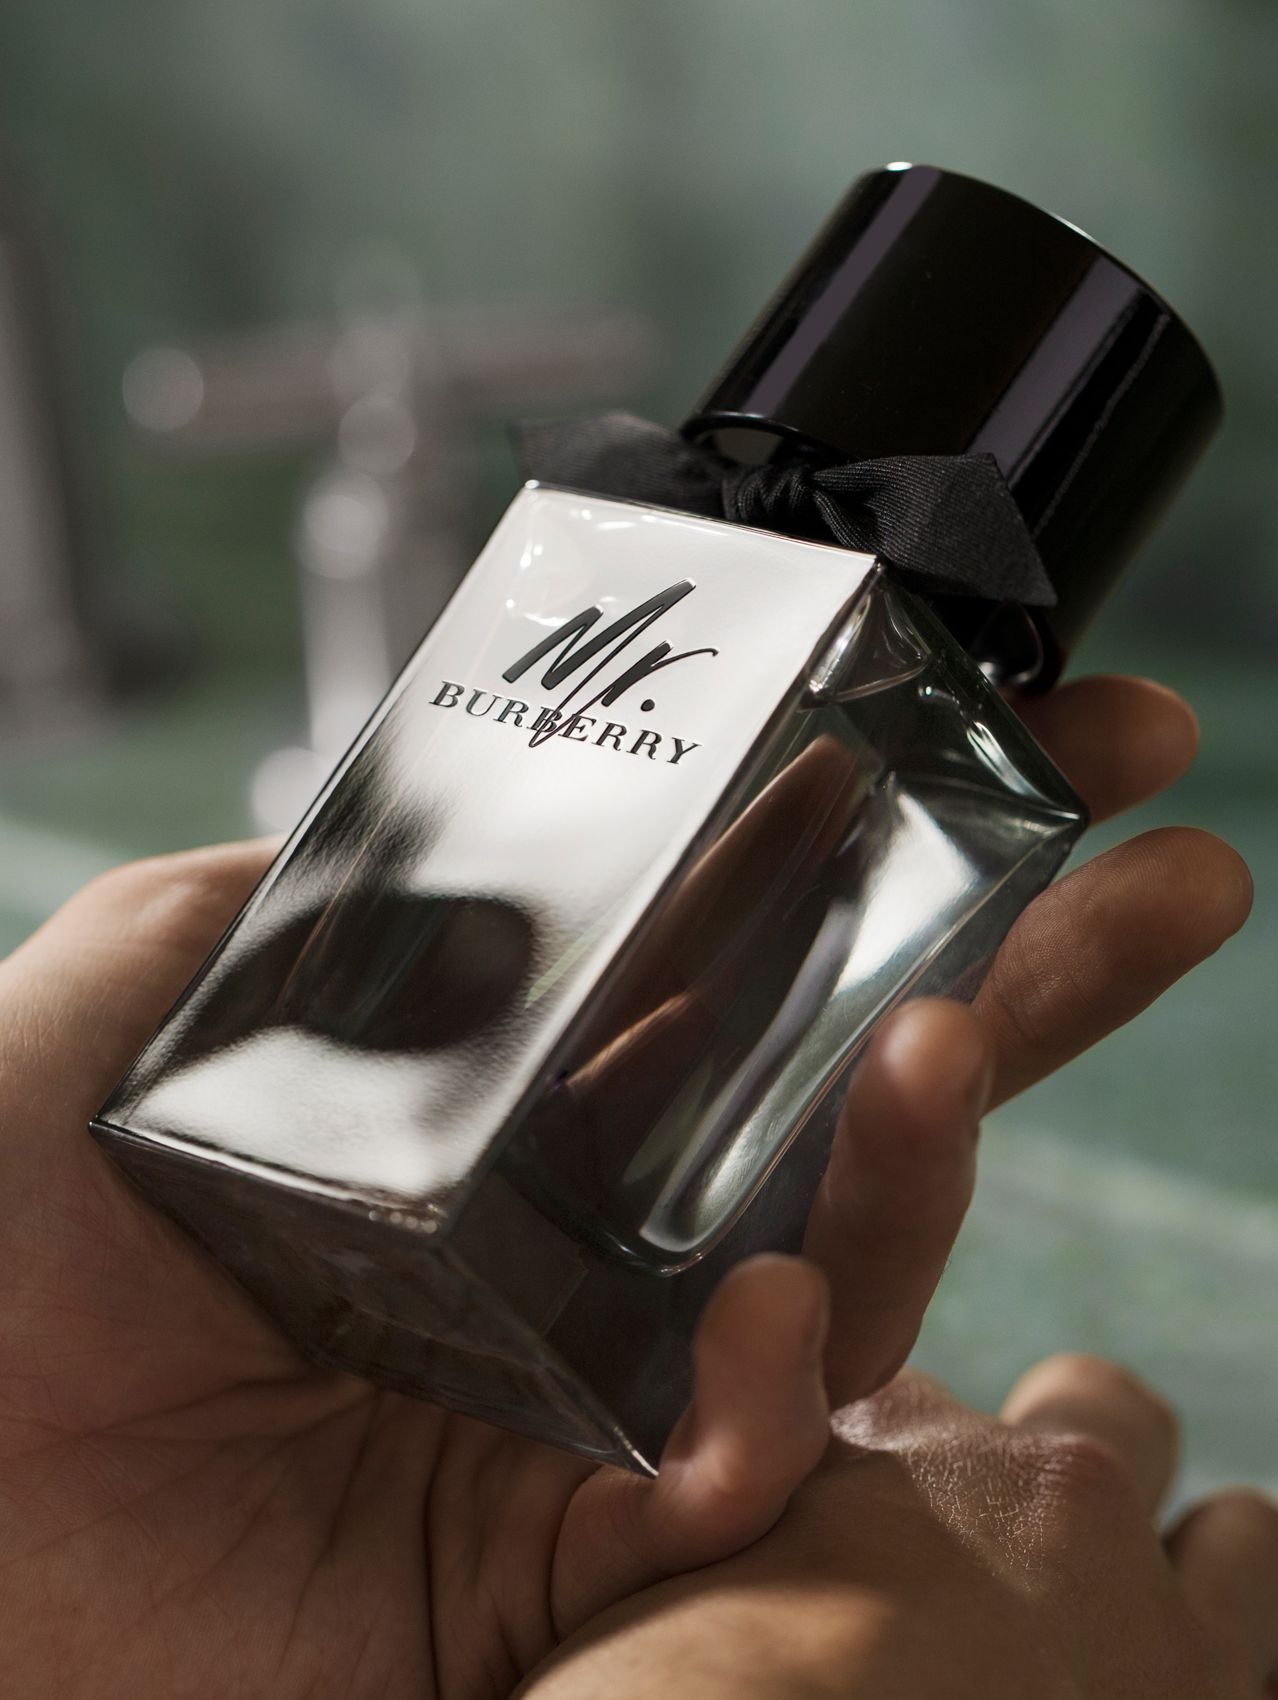 Mr. Burberry Eau de Toilette 100 ml